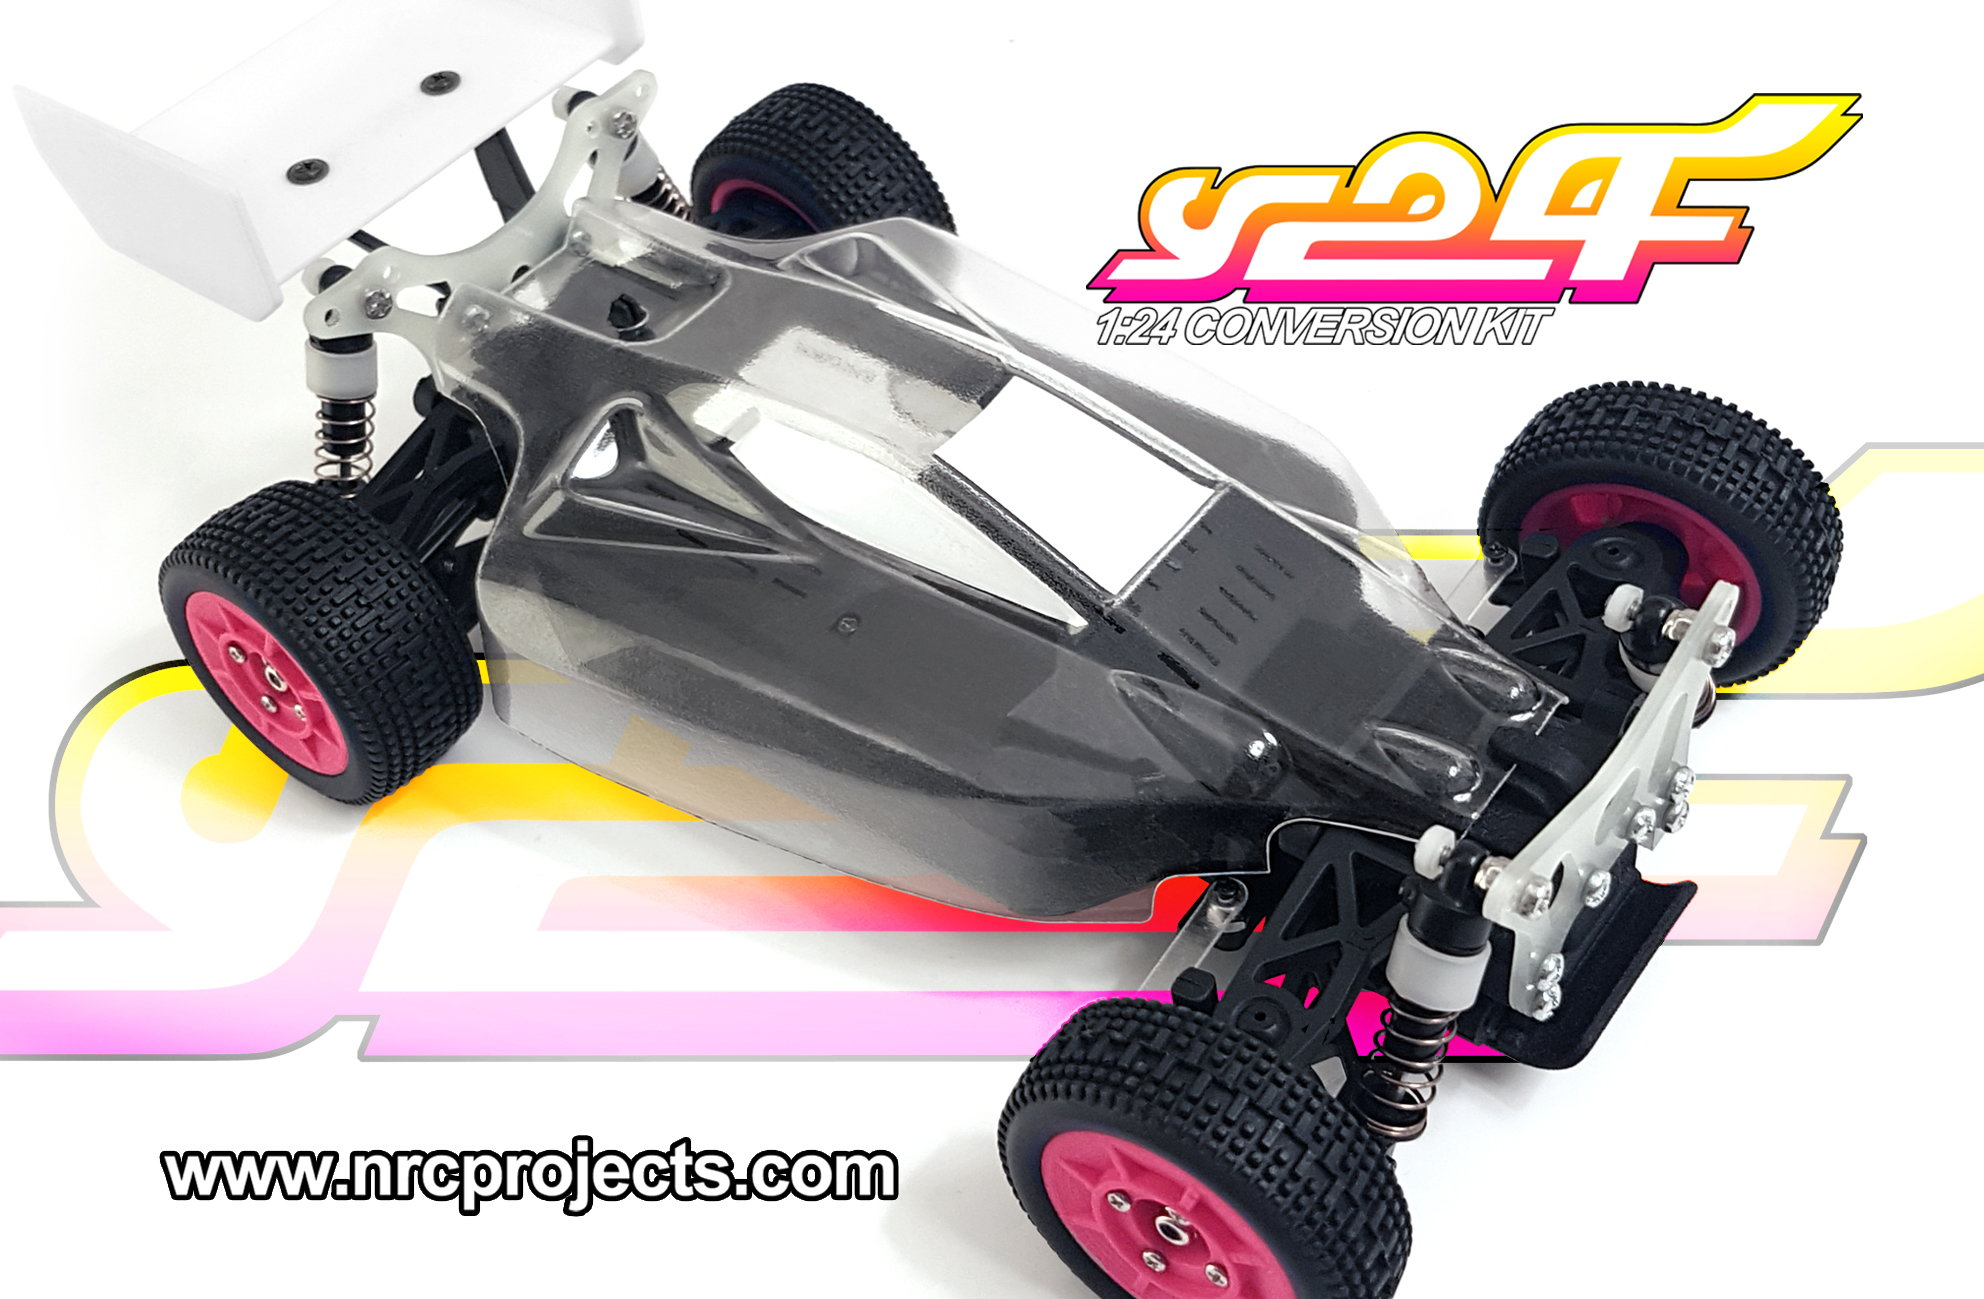 New Micro Buggy - GT24B from Carisma - Page 12 - R/C Tech Forums